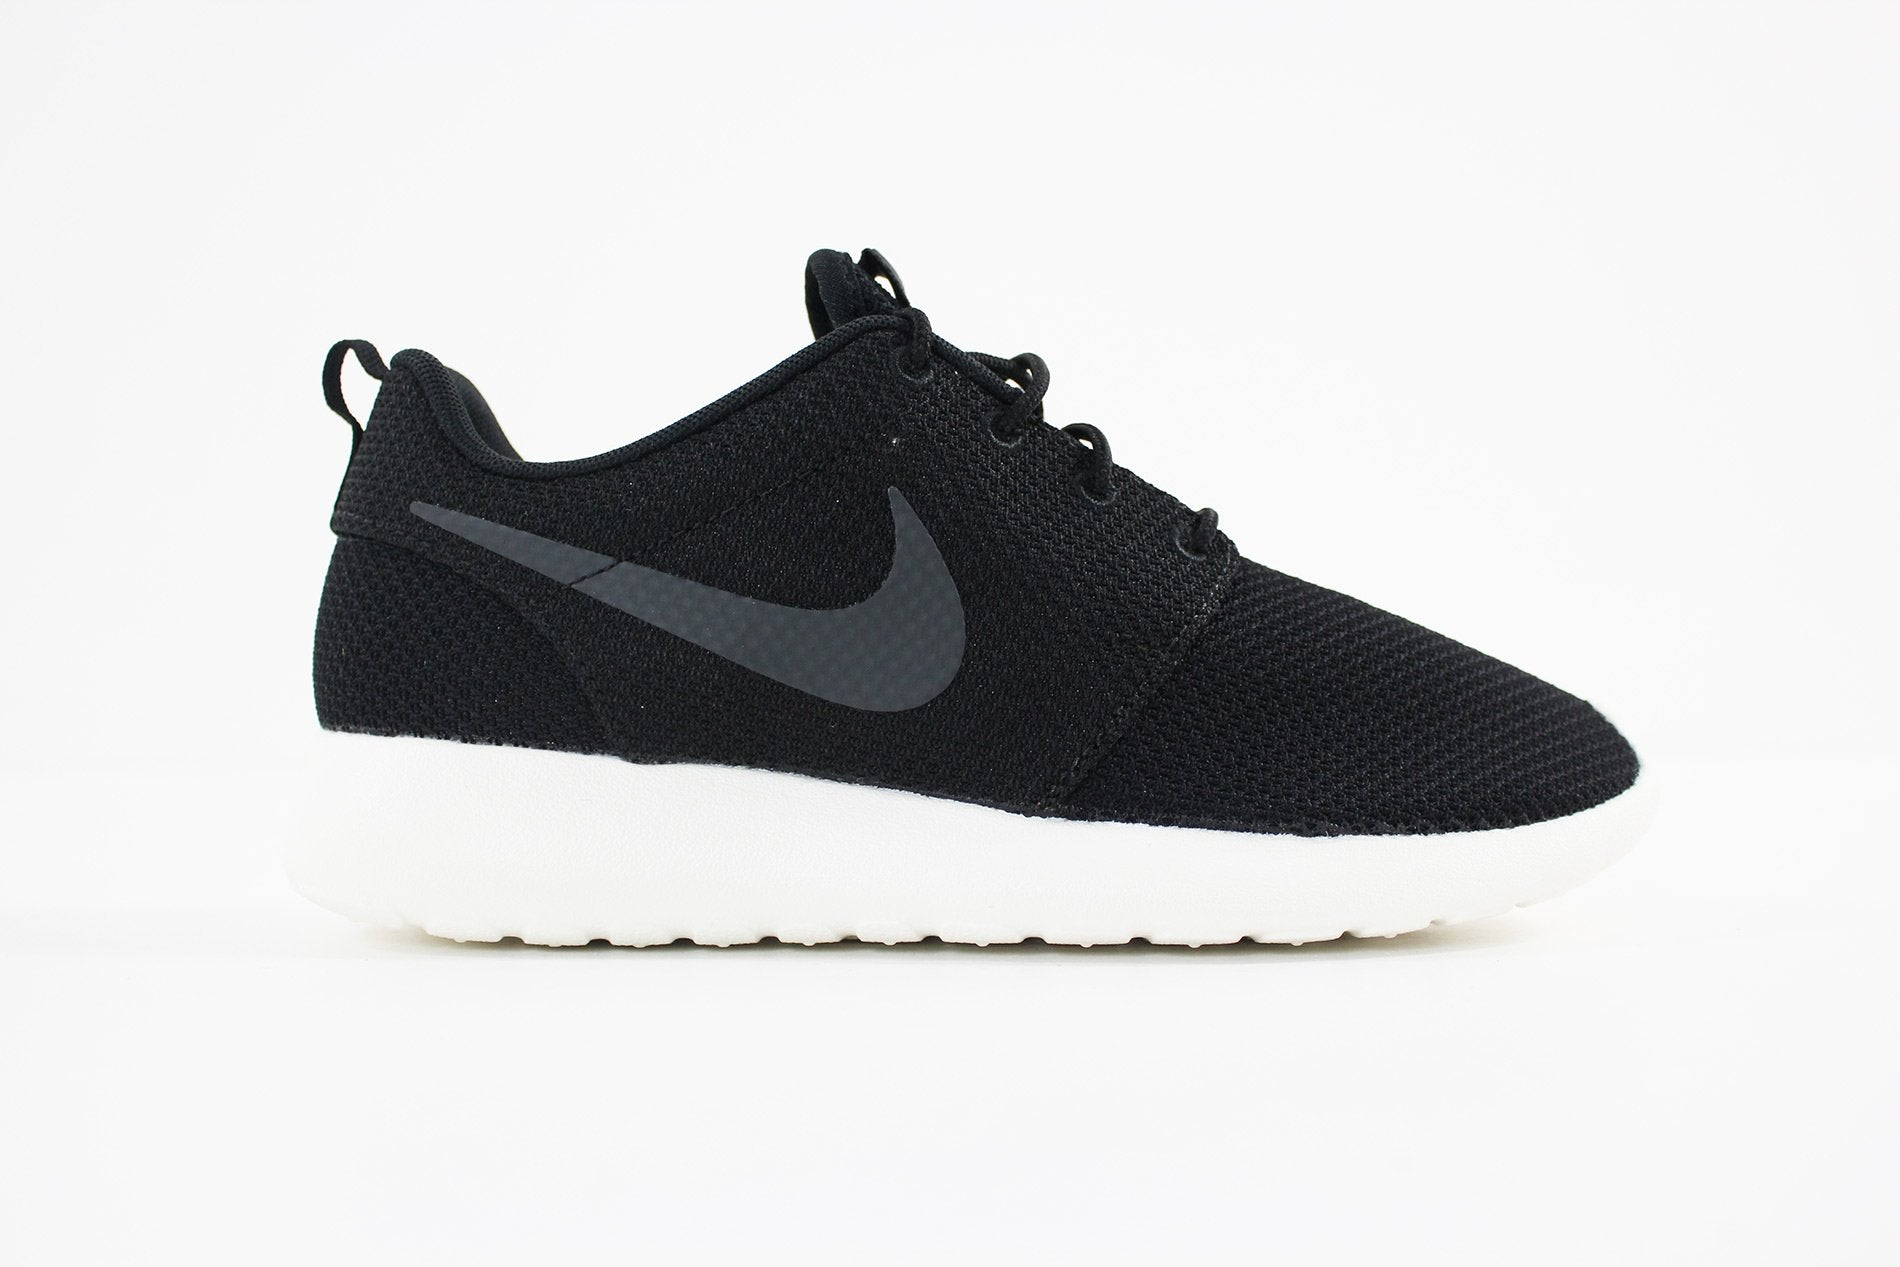 Nike - Men's Nike Roshe One Shoe (BLACK/ANTHRACITE-SAIL) 511881-010